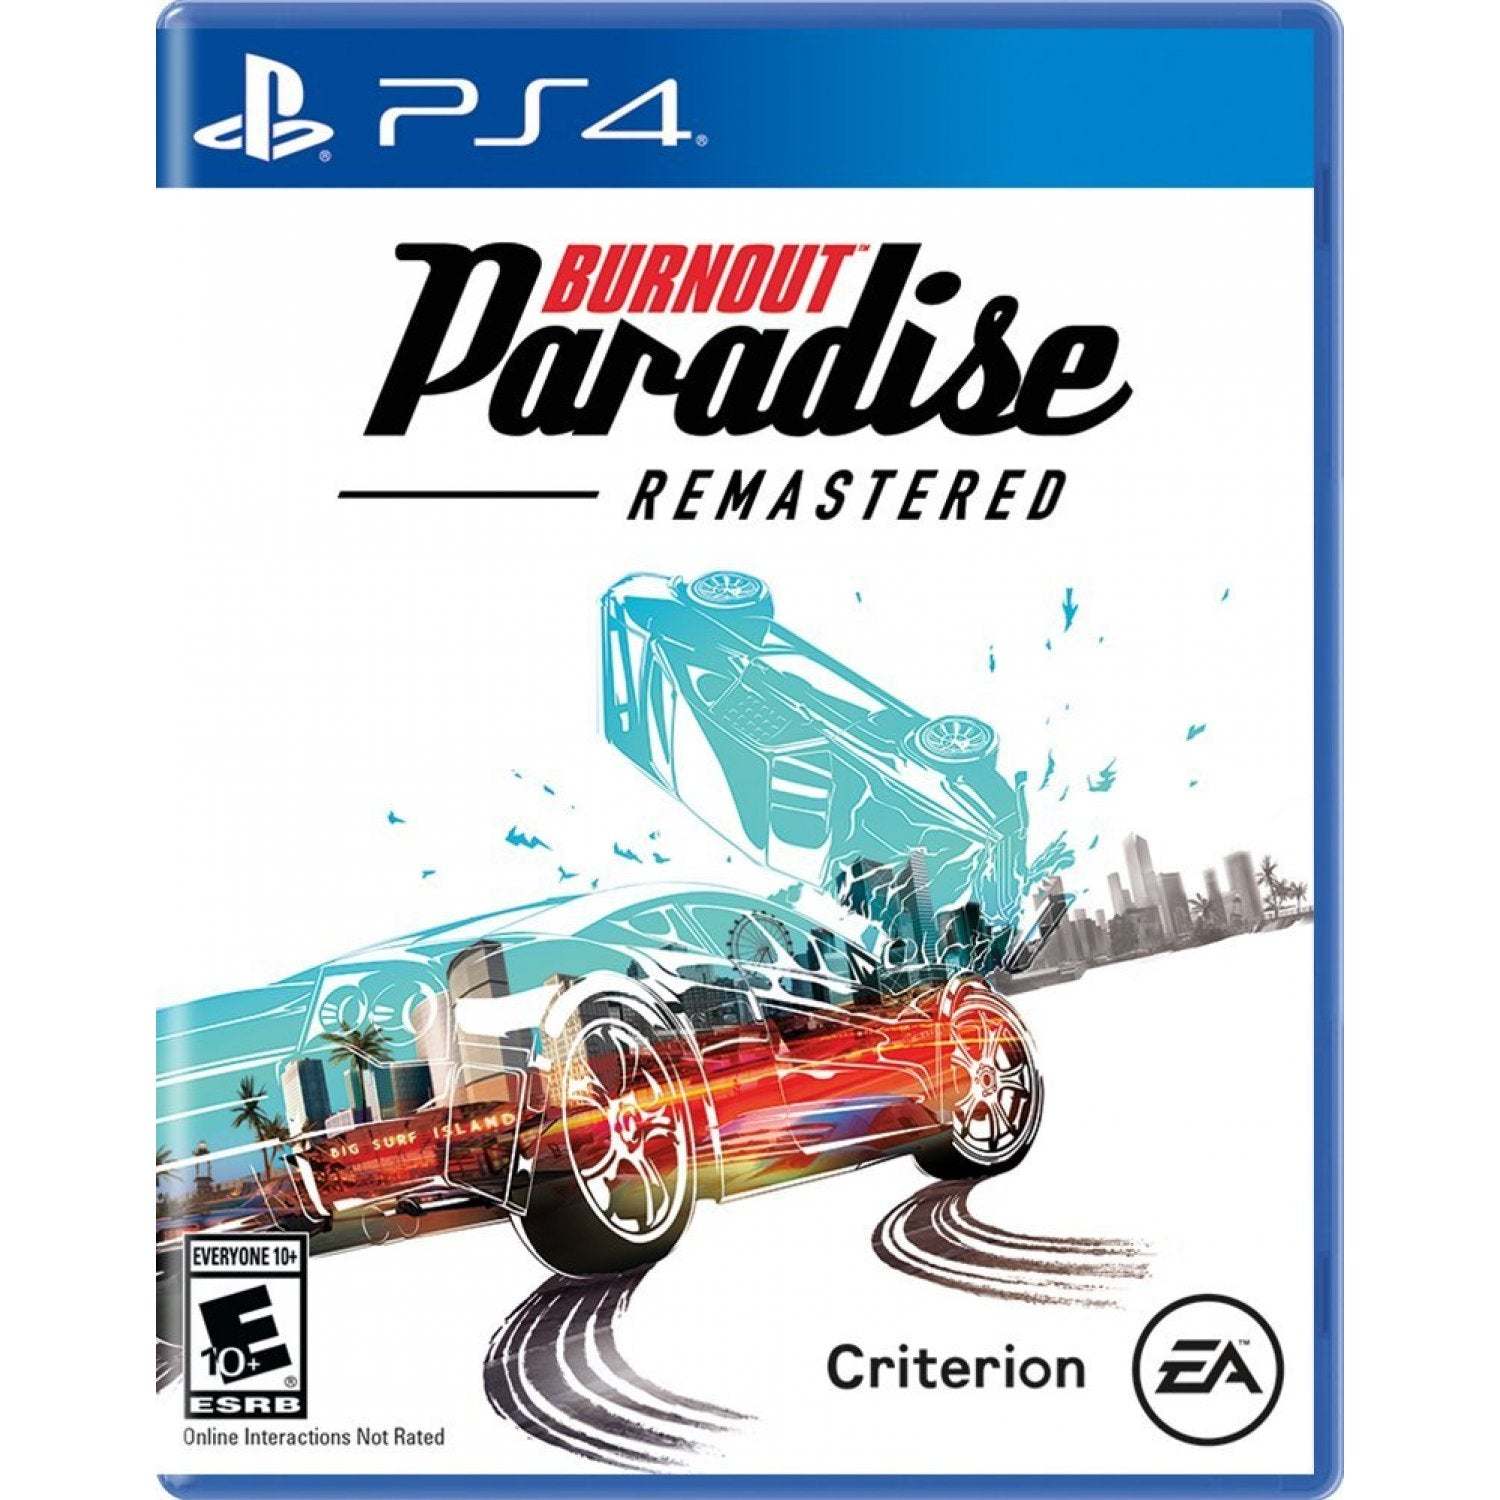 Sony Playstation 4 Tagged Ps4 Page Bravo Team Vr Aim Controller Region 3 English Burnout Paradise Remastered